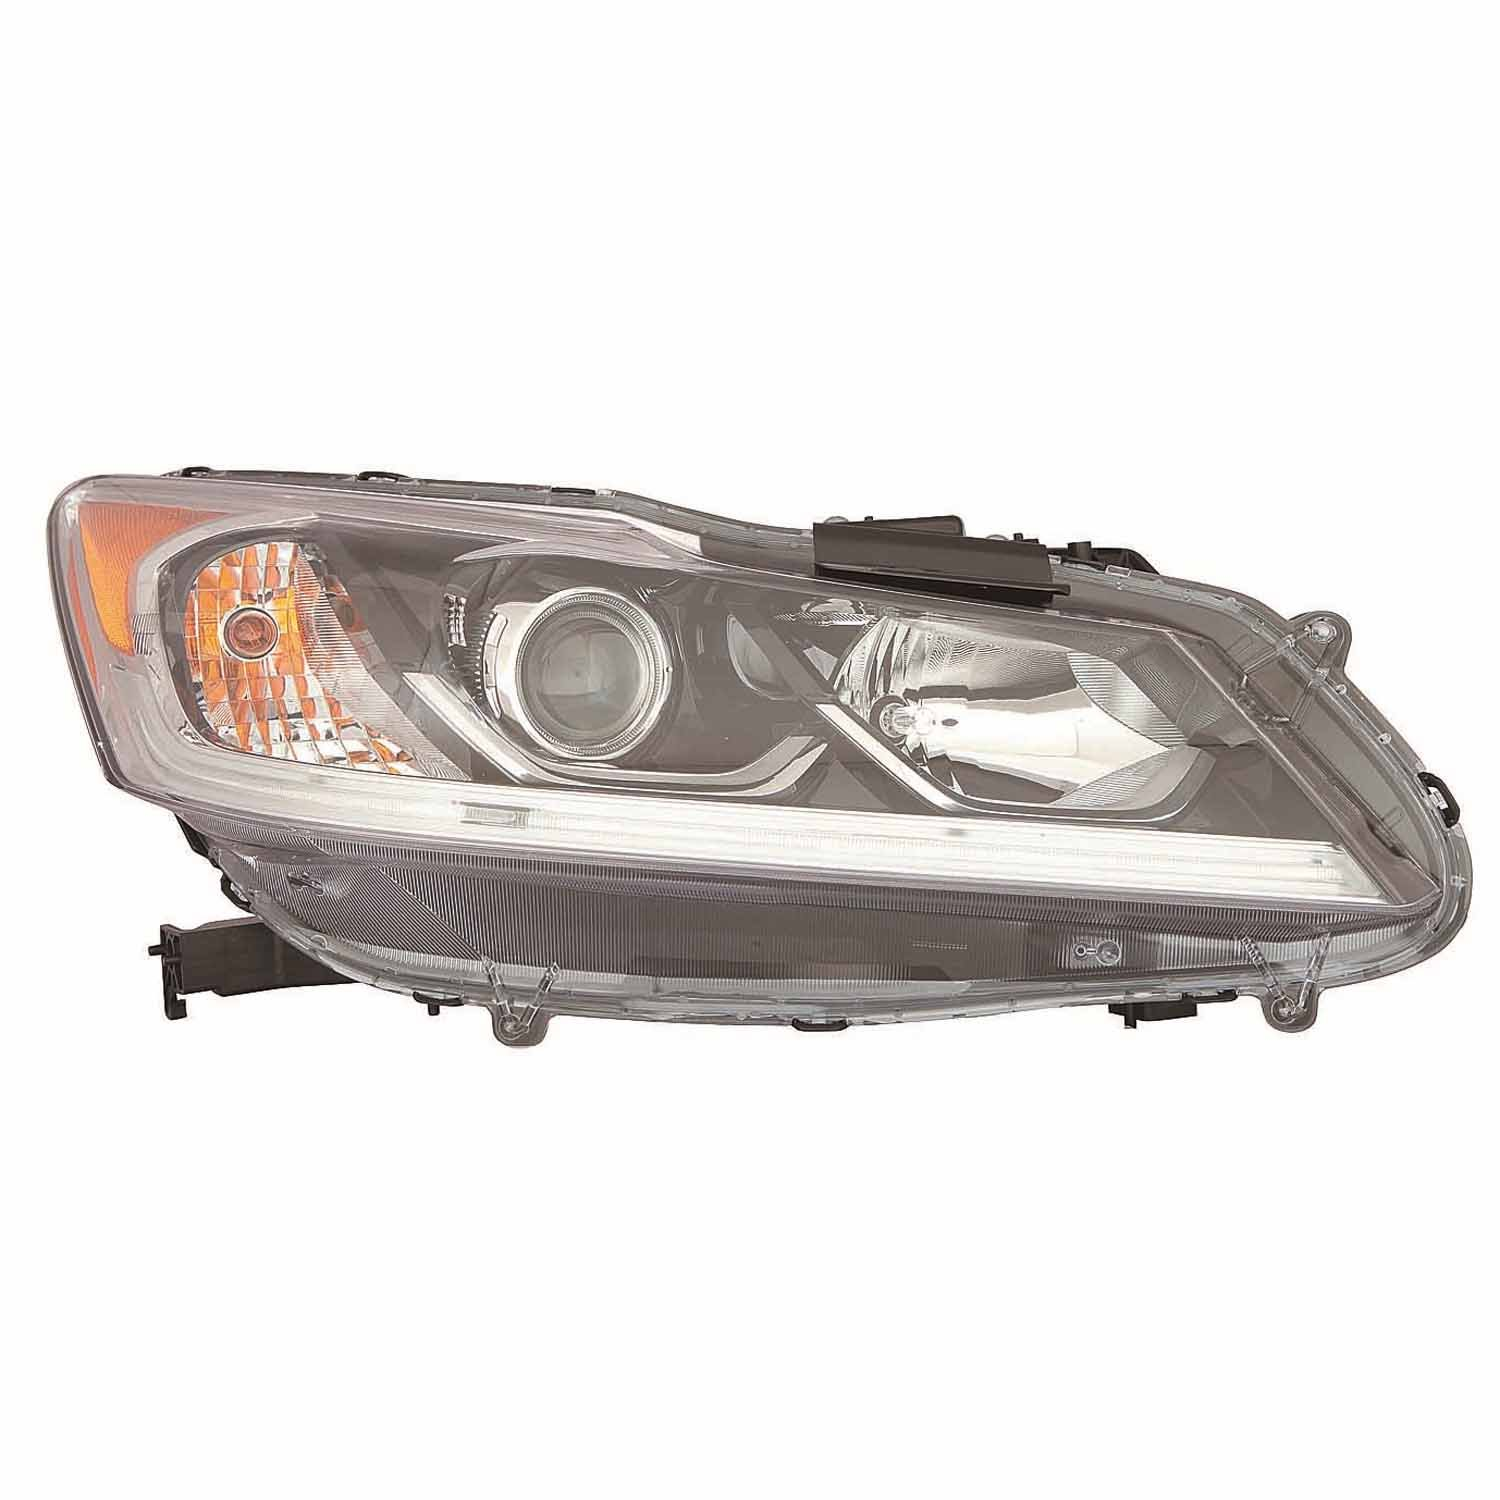 Partslink Number HO2503168 OE Replacement Headlight Assembly HONDA ACCORD SEDAN Multiple Manufacturers HO2503168R